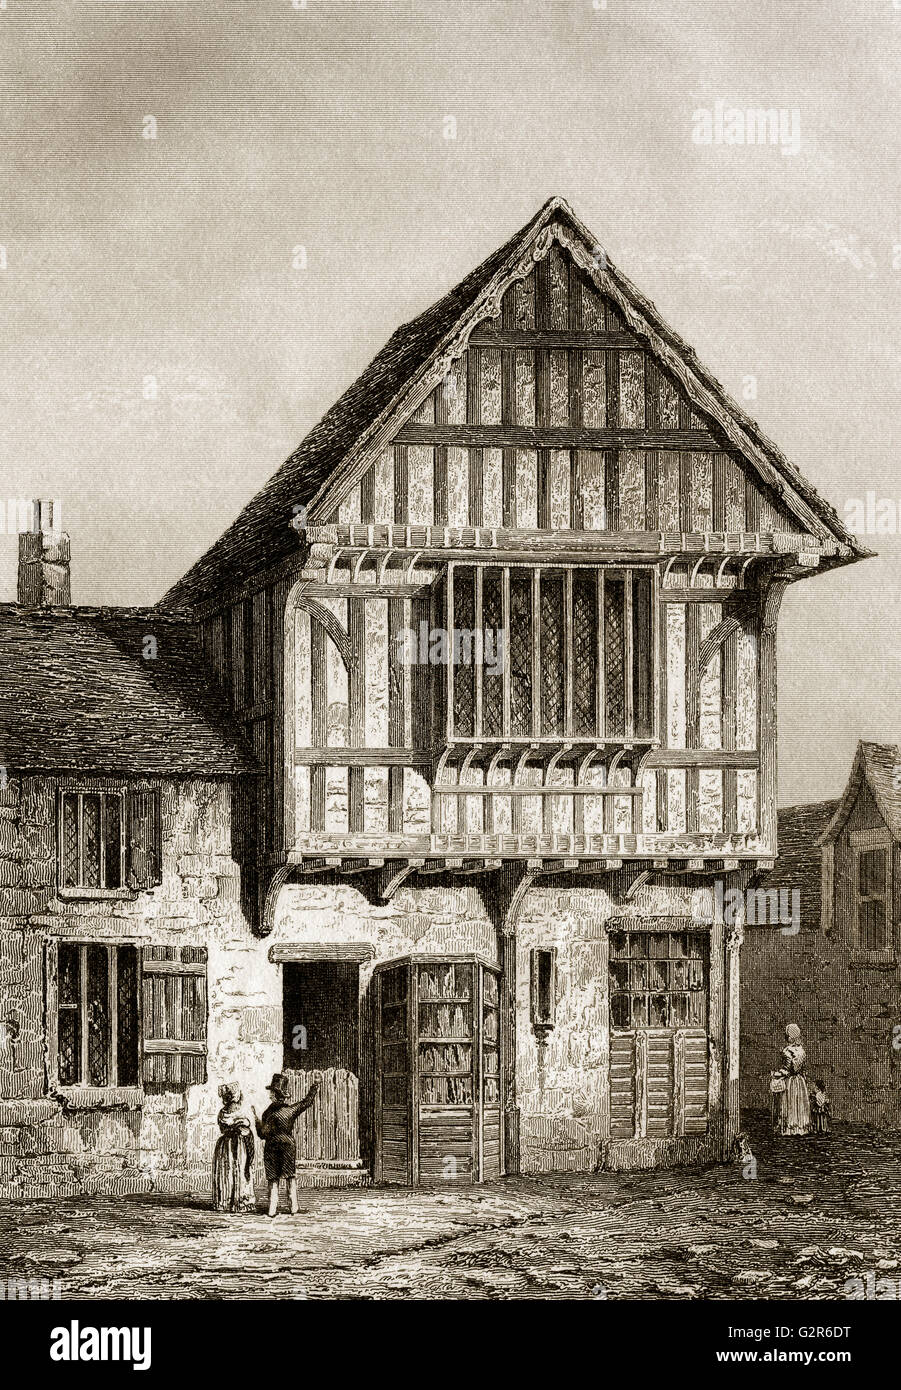 15th Century House, Leicester city, Leicestershire, England - Stock Image